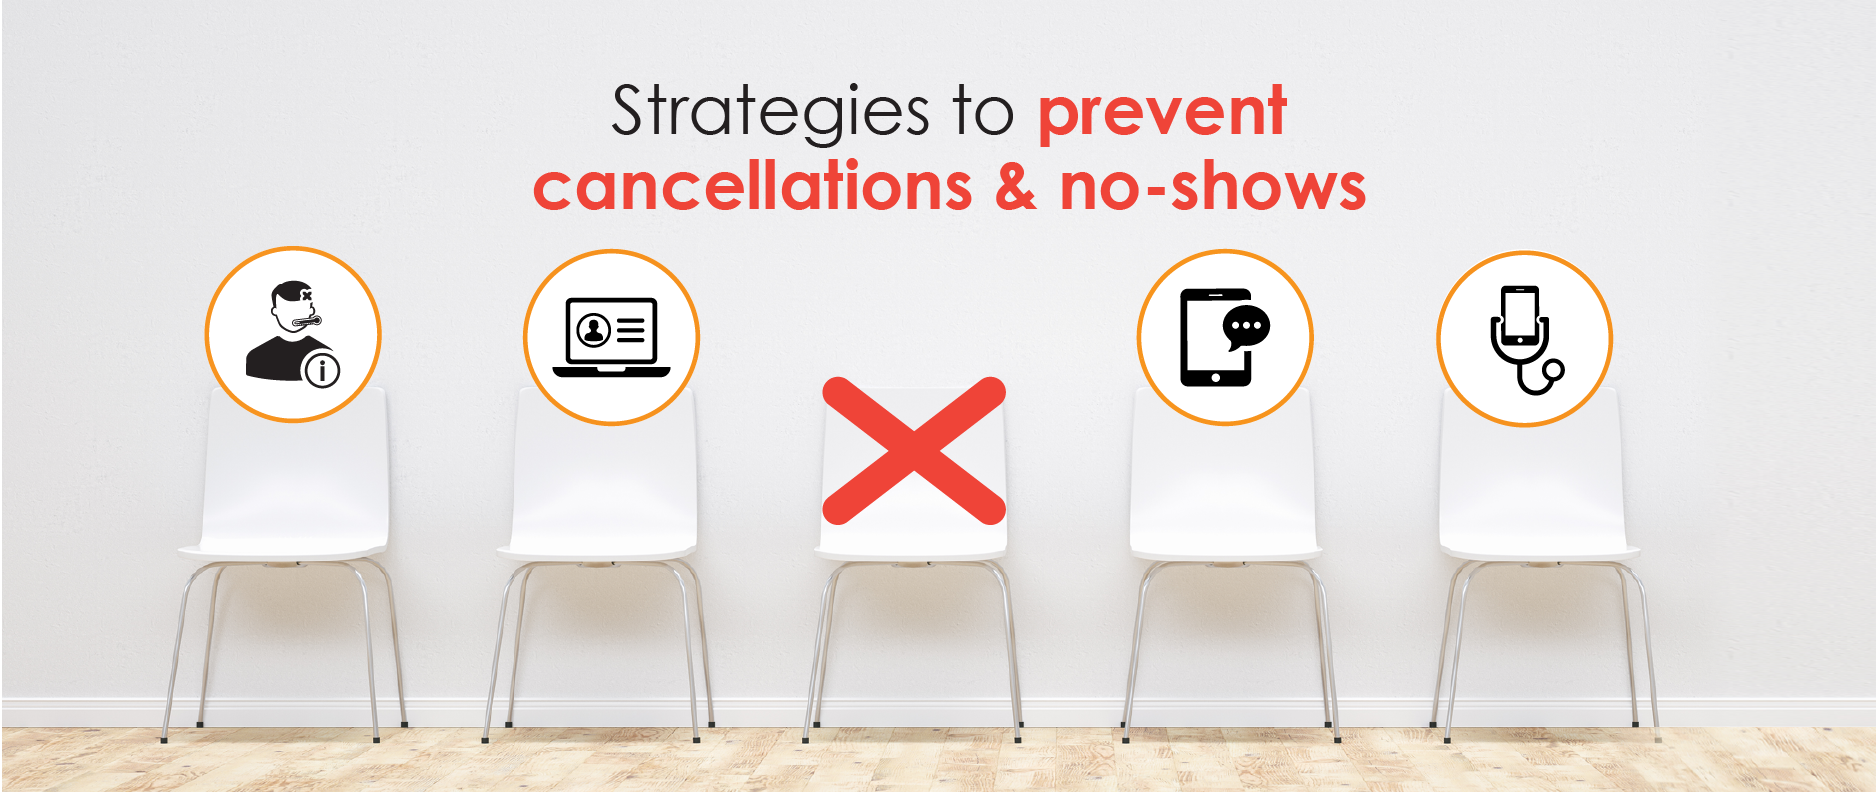 6 strategies to prevent cancellations & no-shows